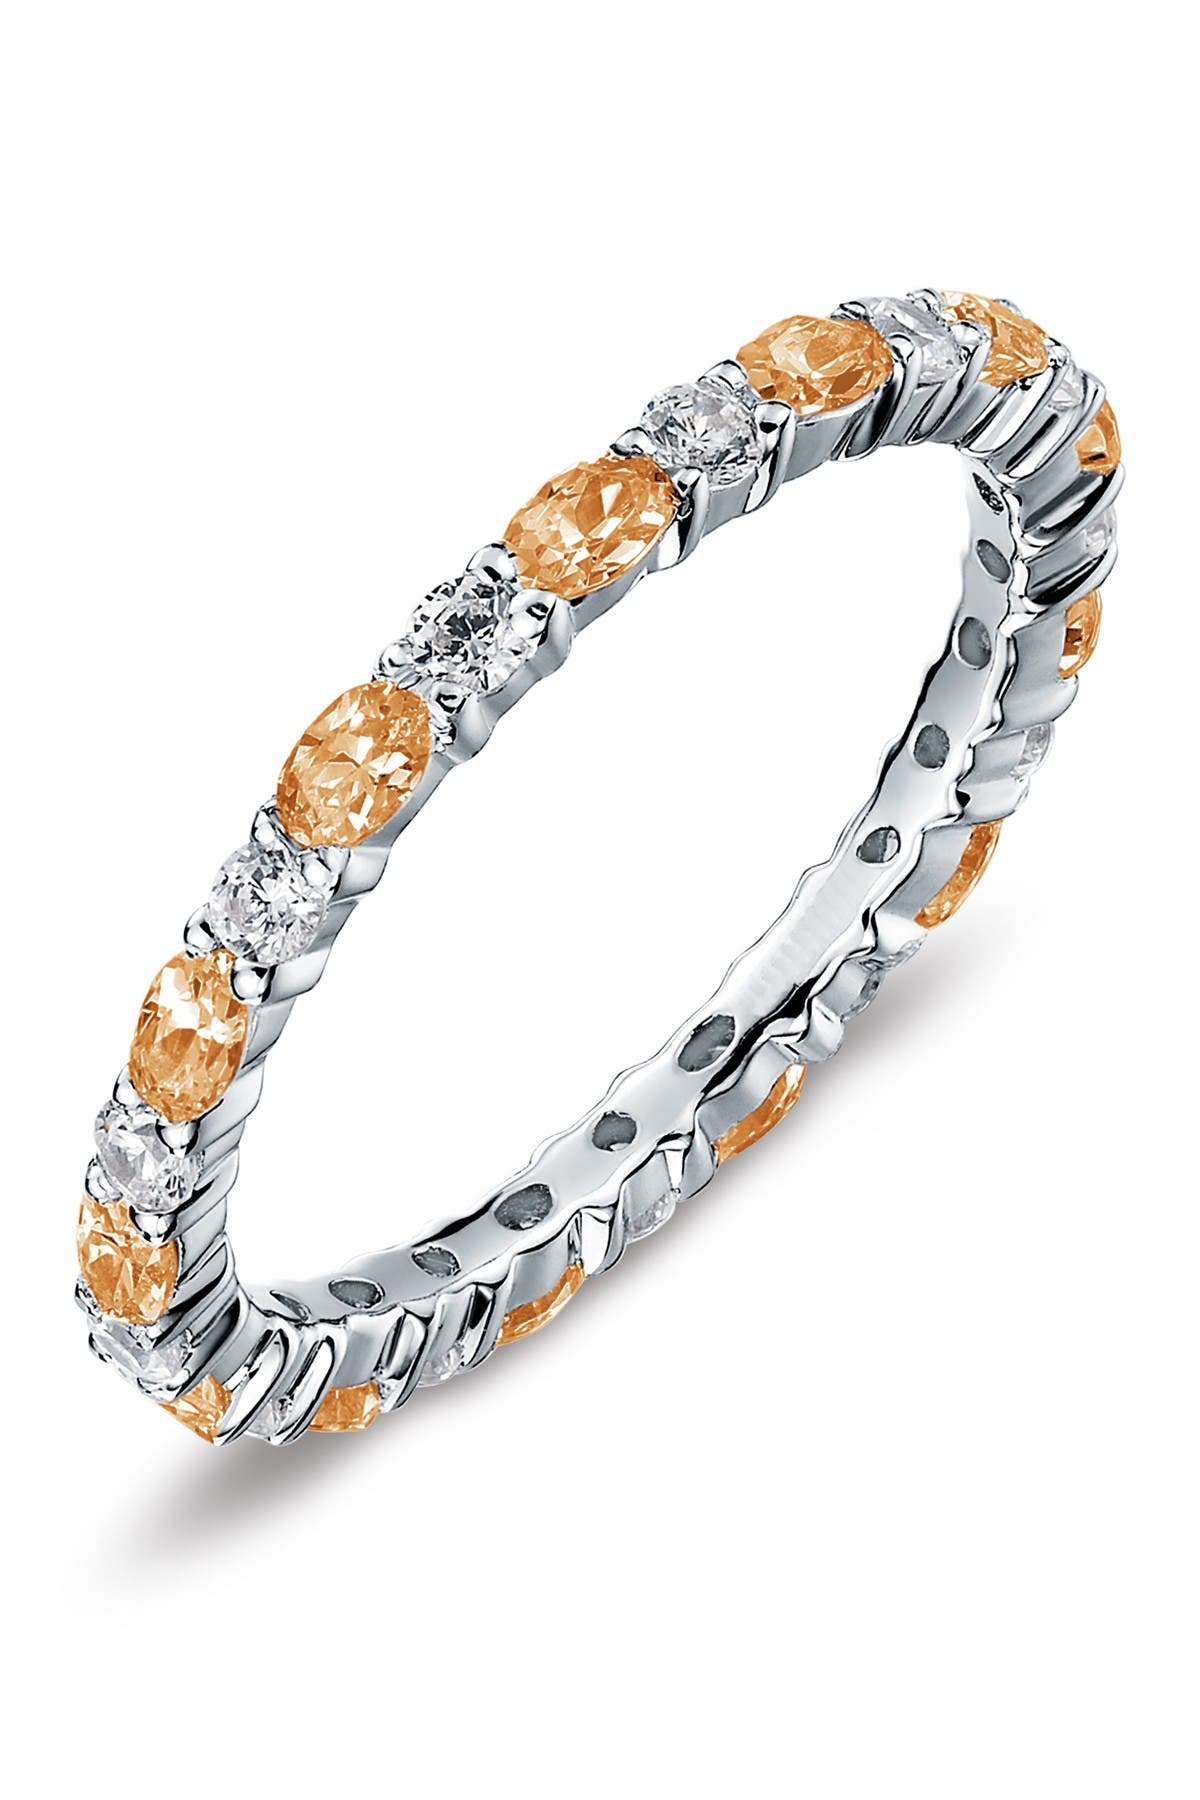 Image of LaFonn Sterling Silver November Birthstone Stackable Band Simulated Diamond Ring